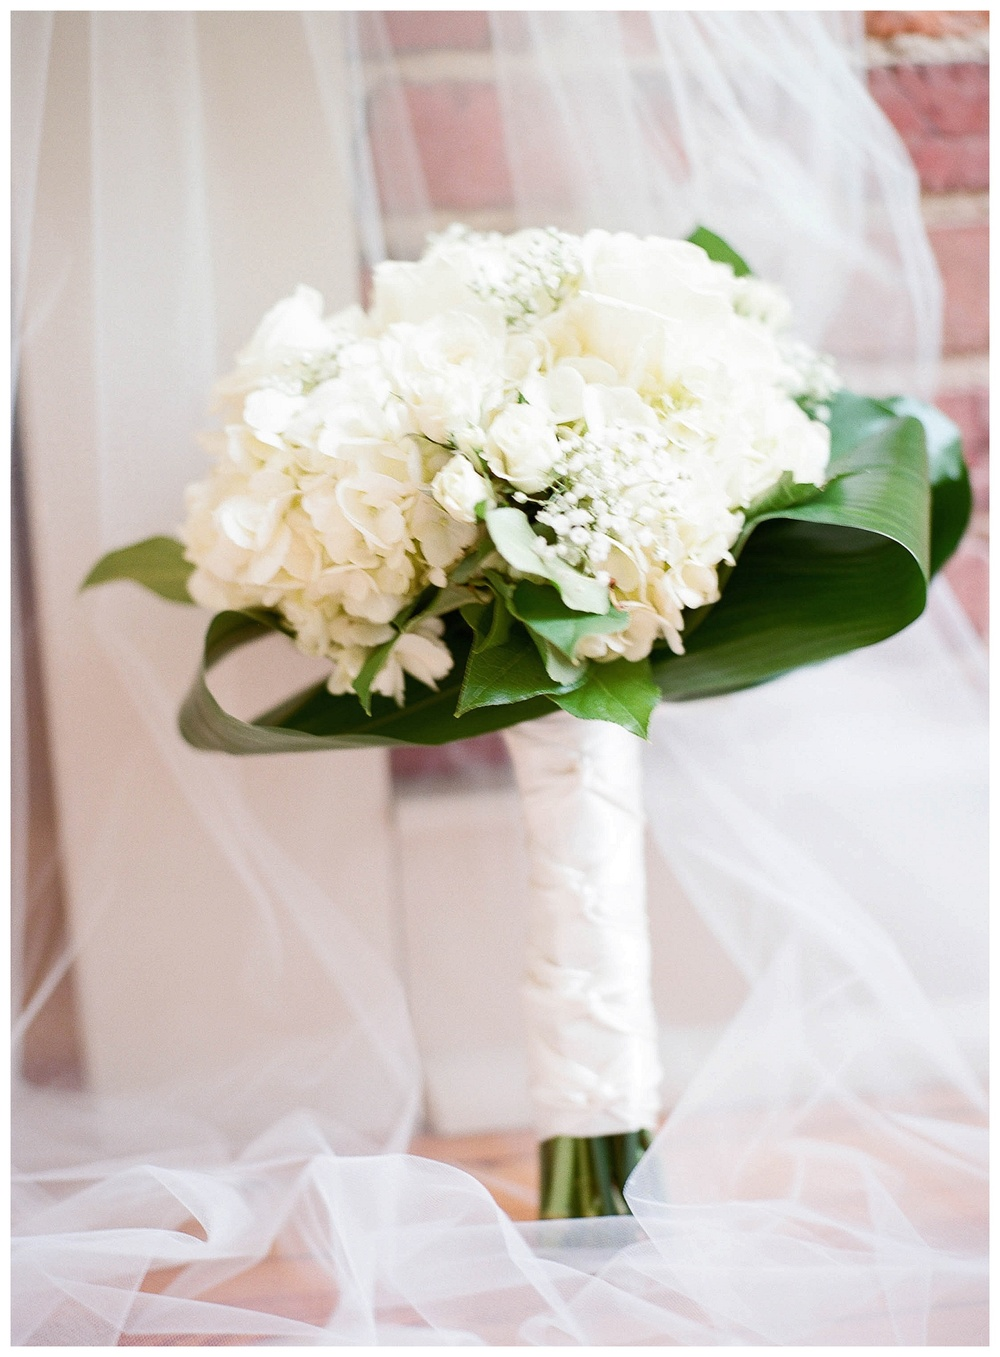 Darlington Florist bridal bouqet at Hotel Florence, SC